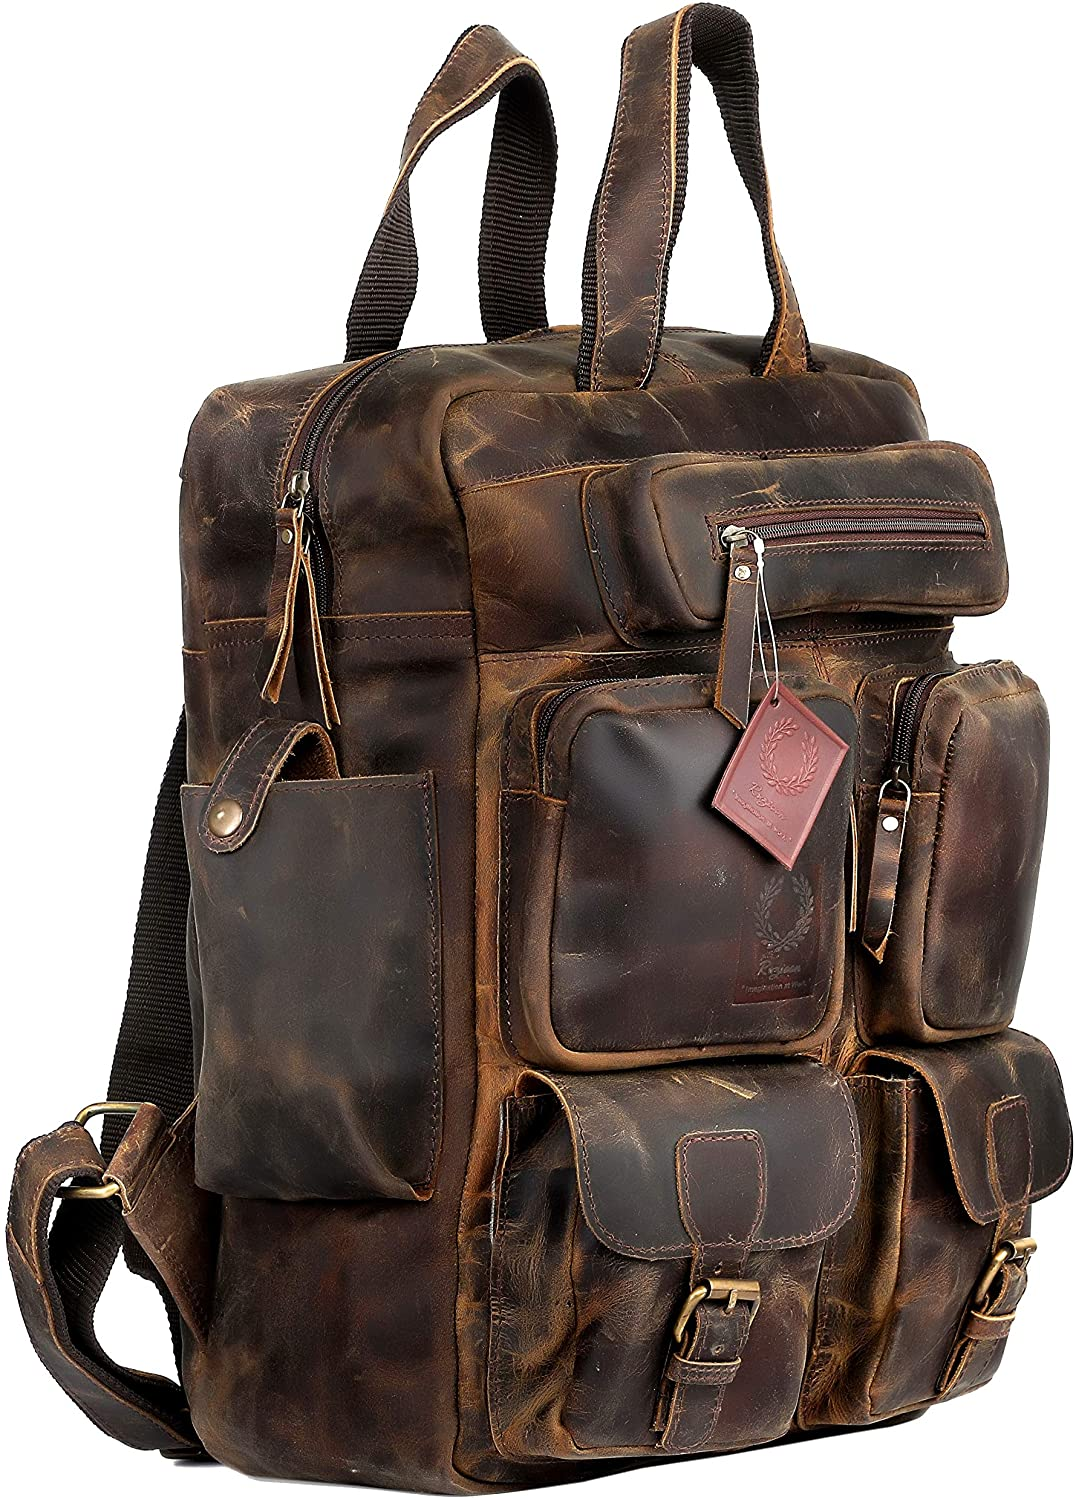 Ruzioon Vintage New product! New type Buffalo Leather Backpack Pockets Ba Multi Max 70% OFF Travel